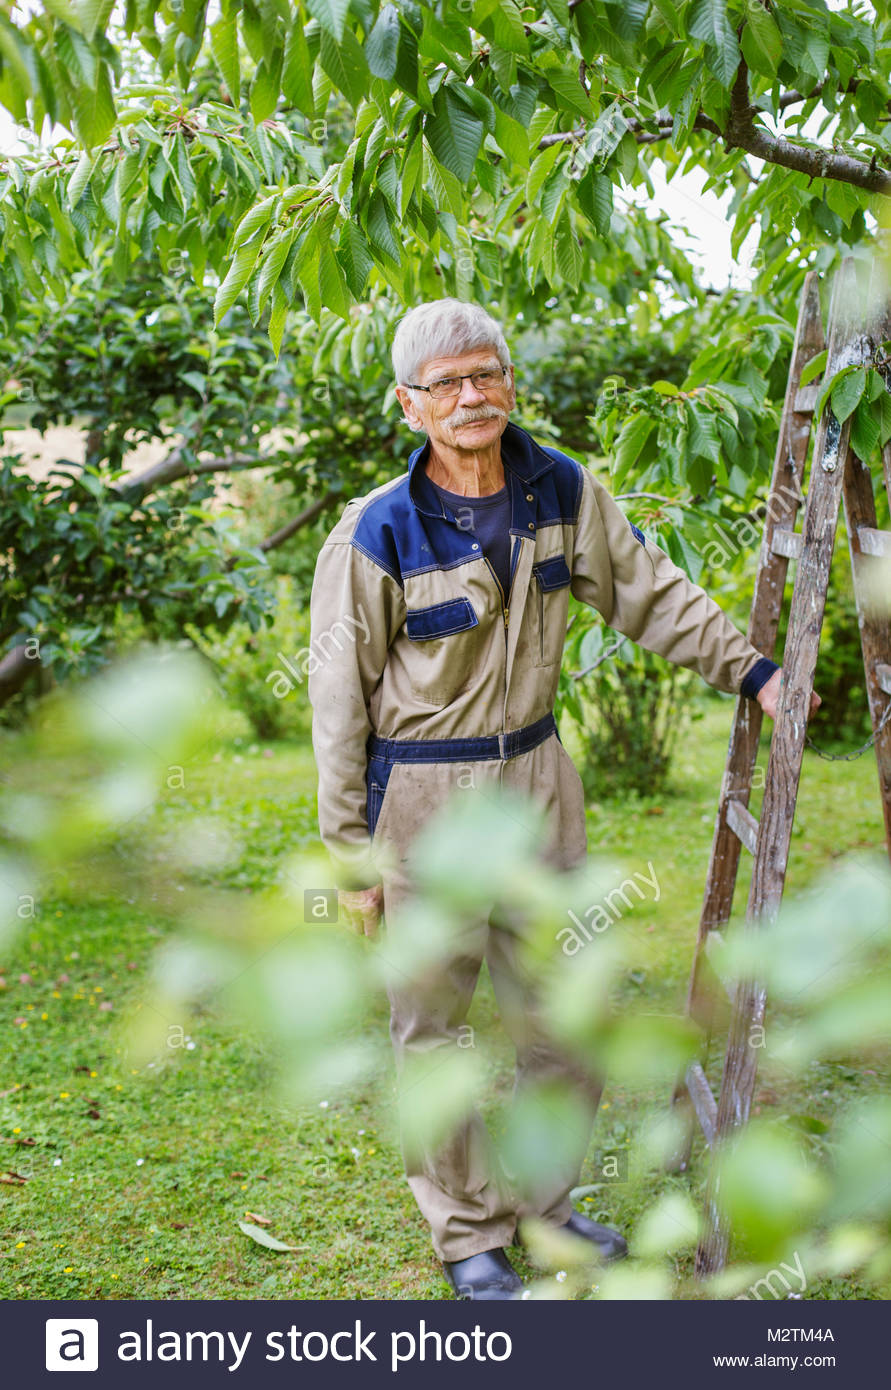 Man holding ladder in orchard - Stock Image